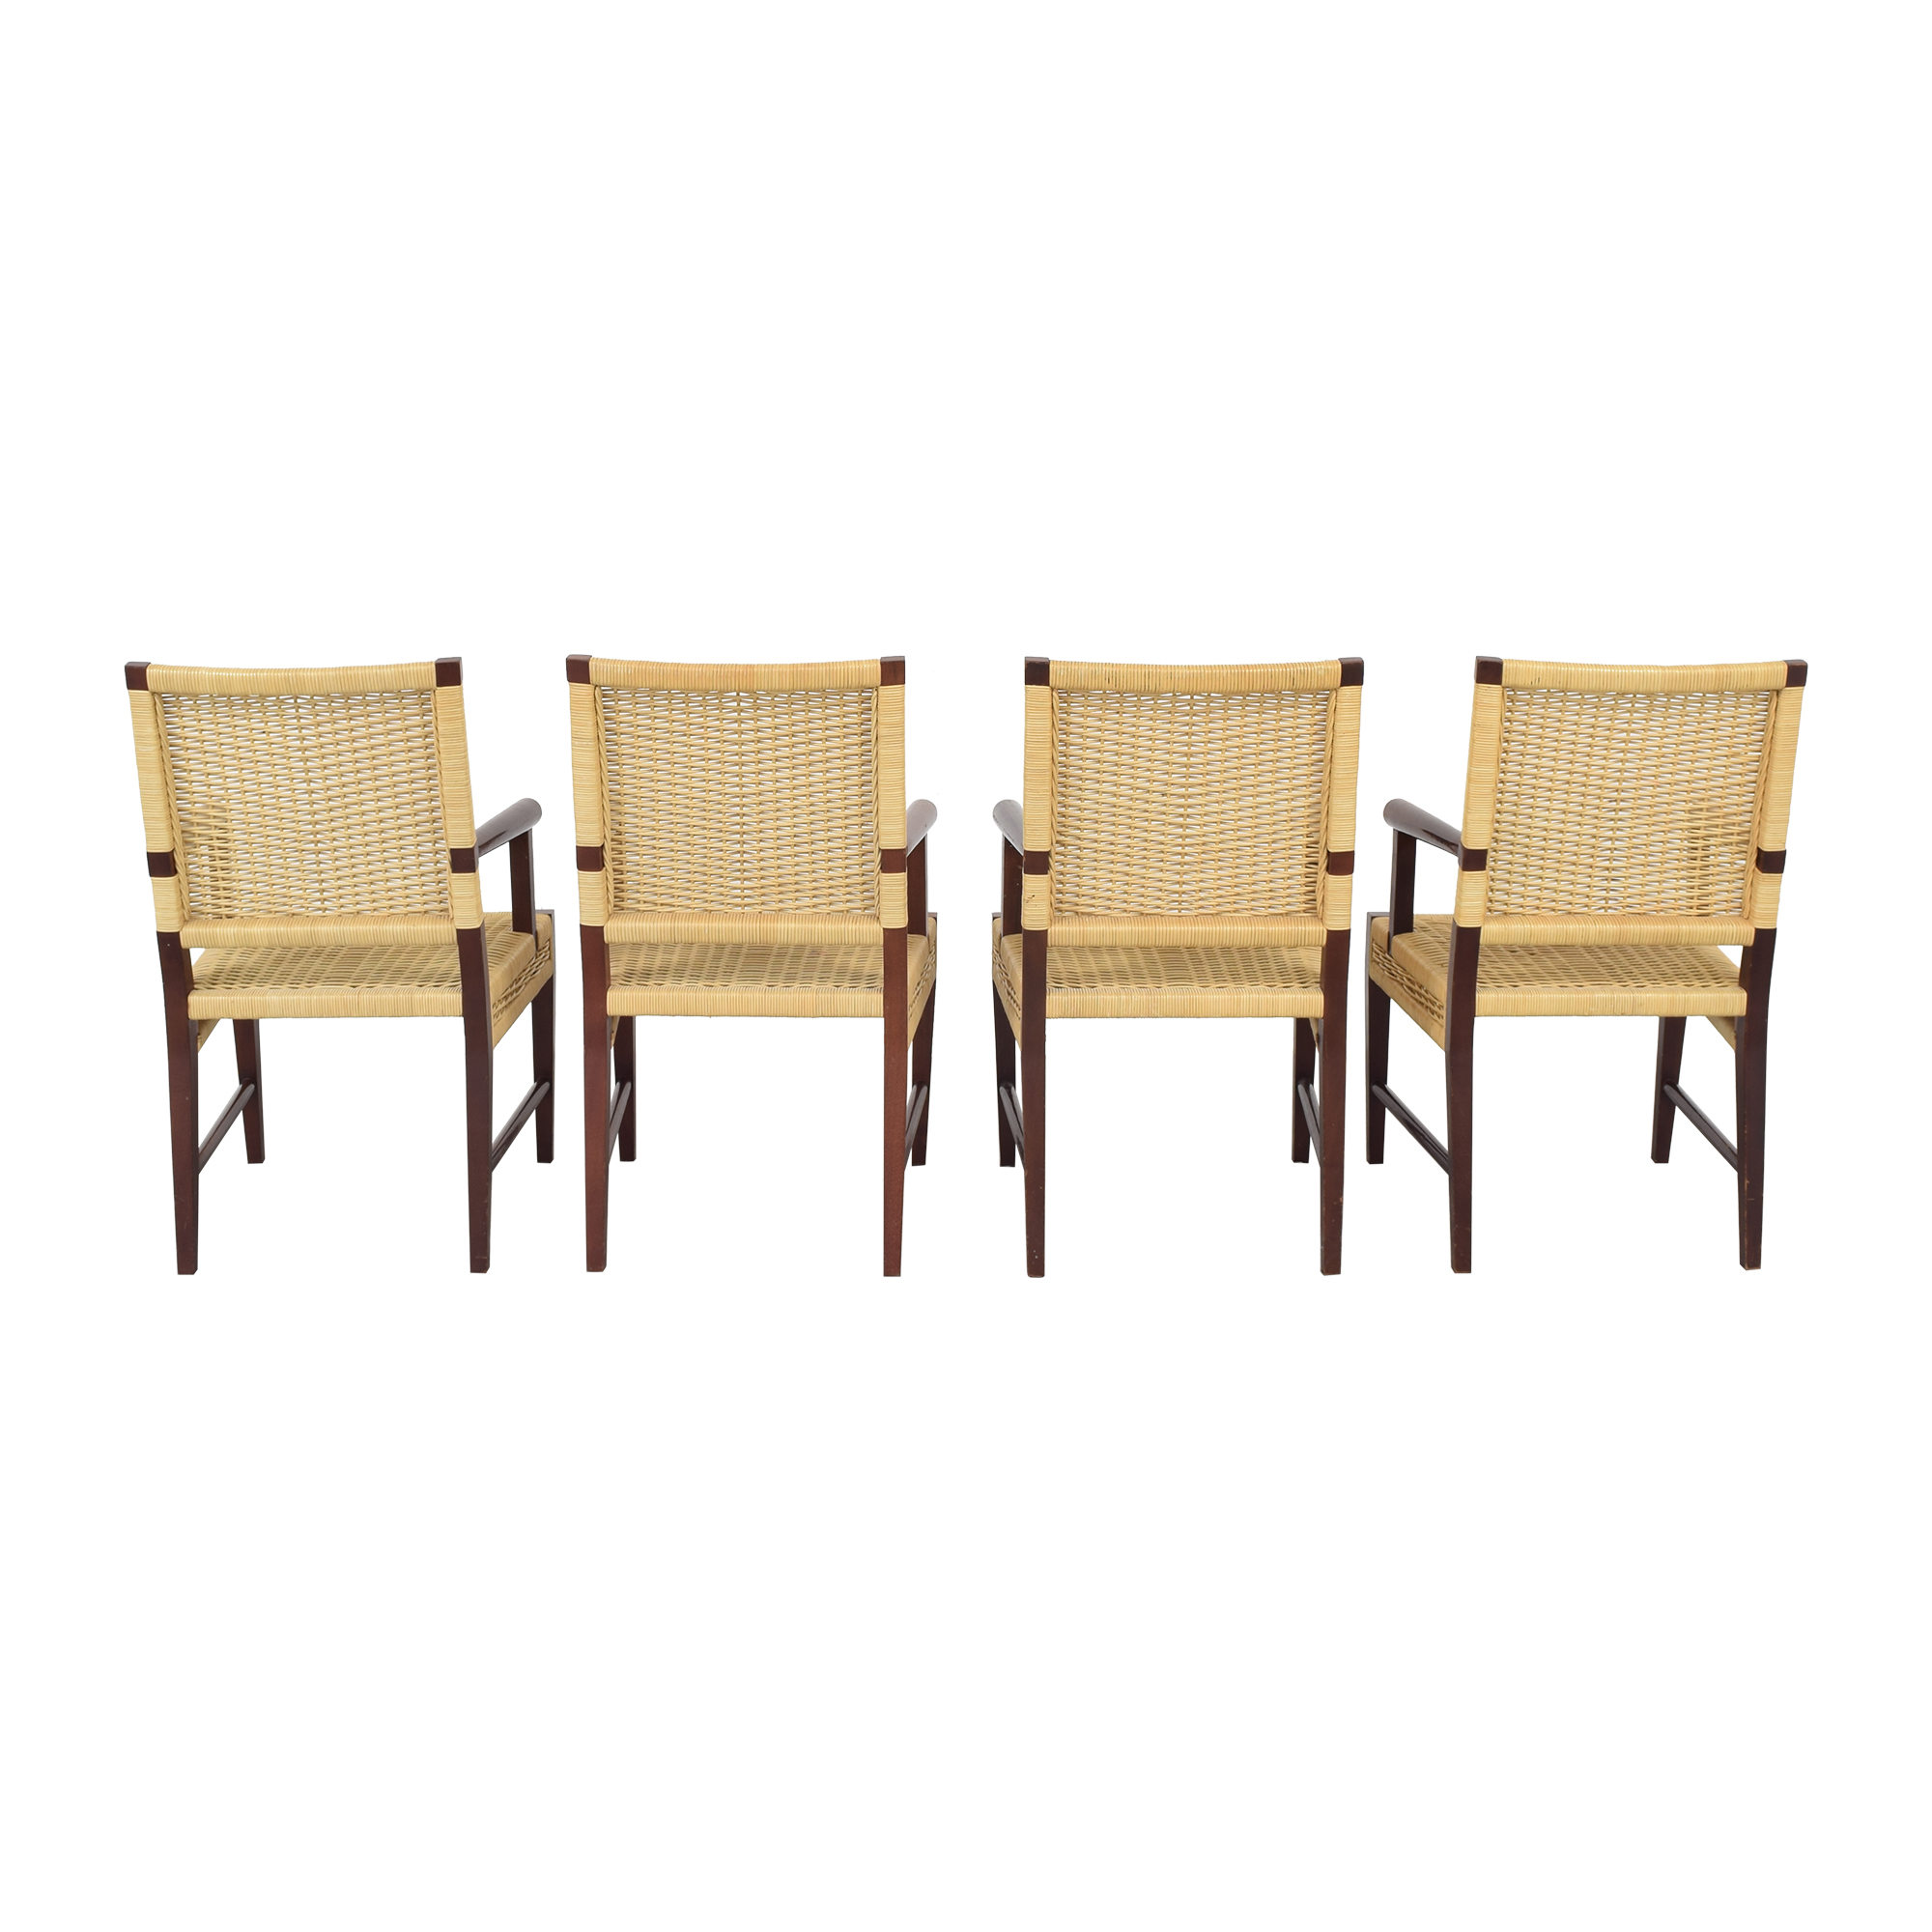 Donghia Dining Chairs in Merbau Wood with Raffia Weaving sale